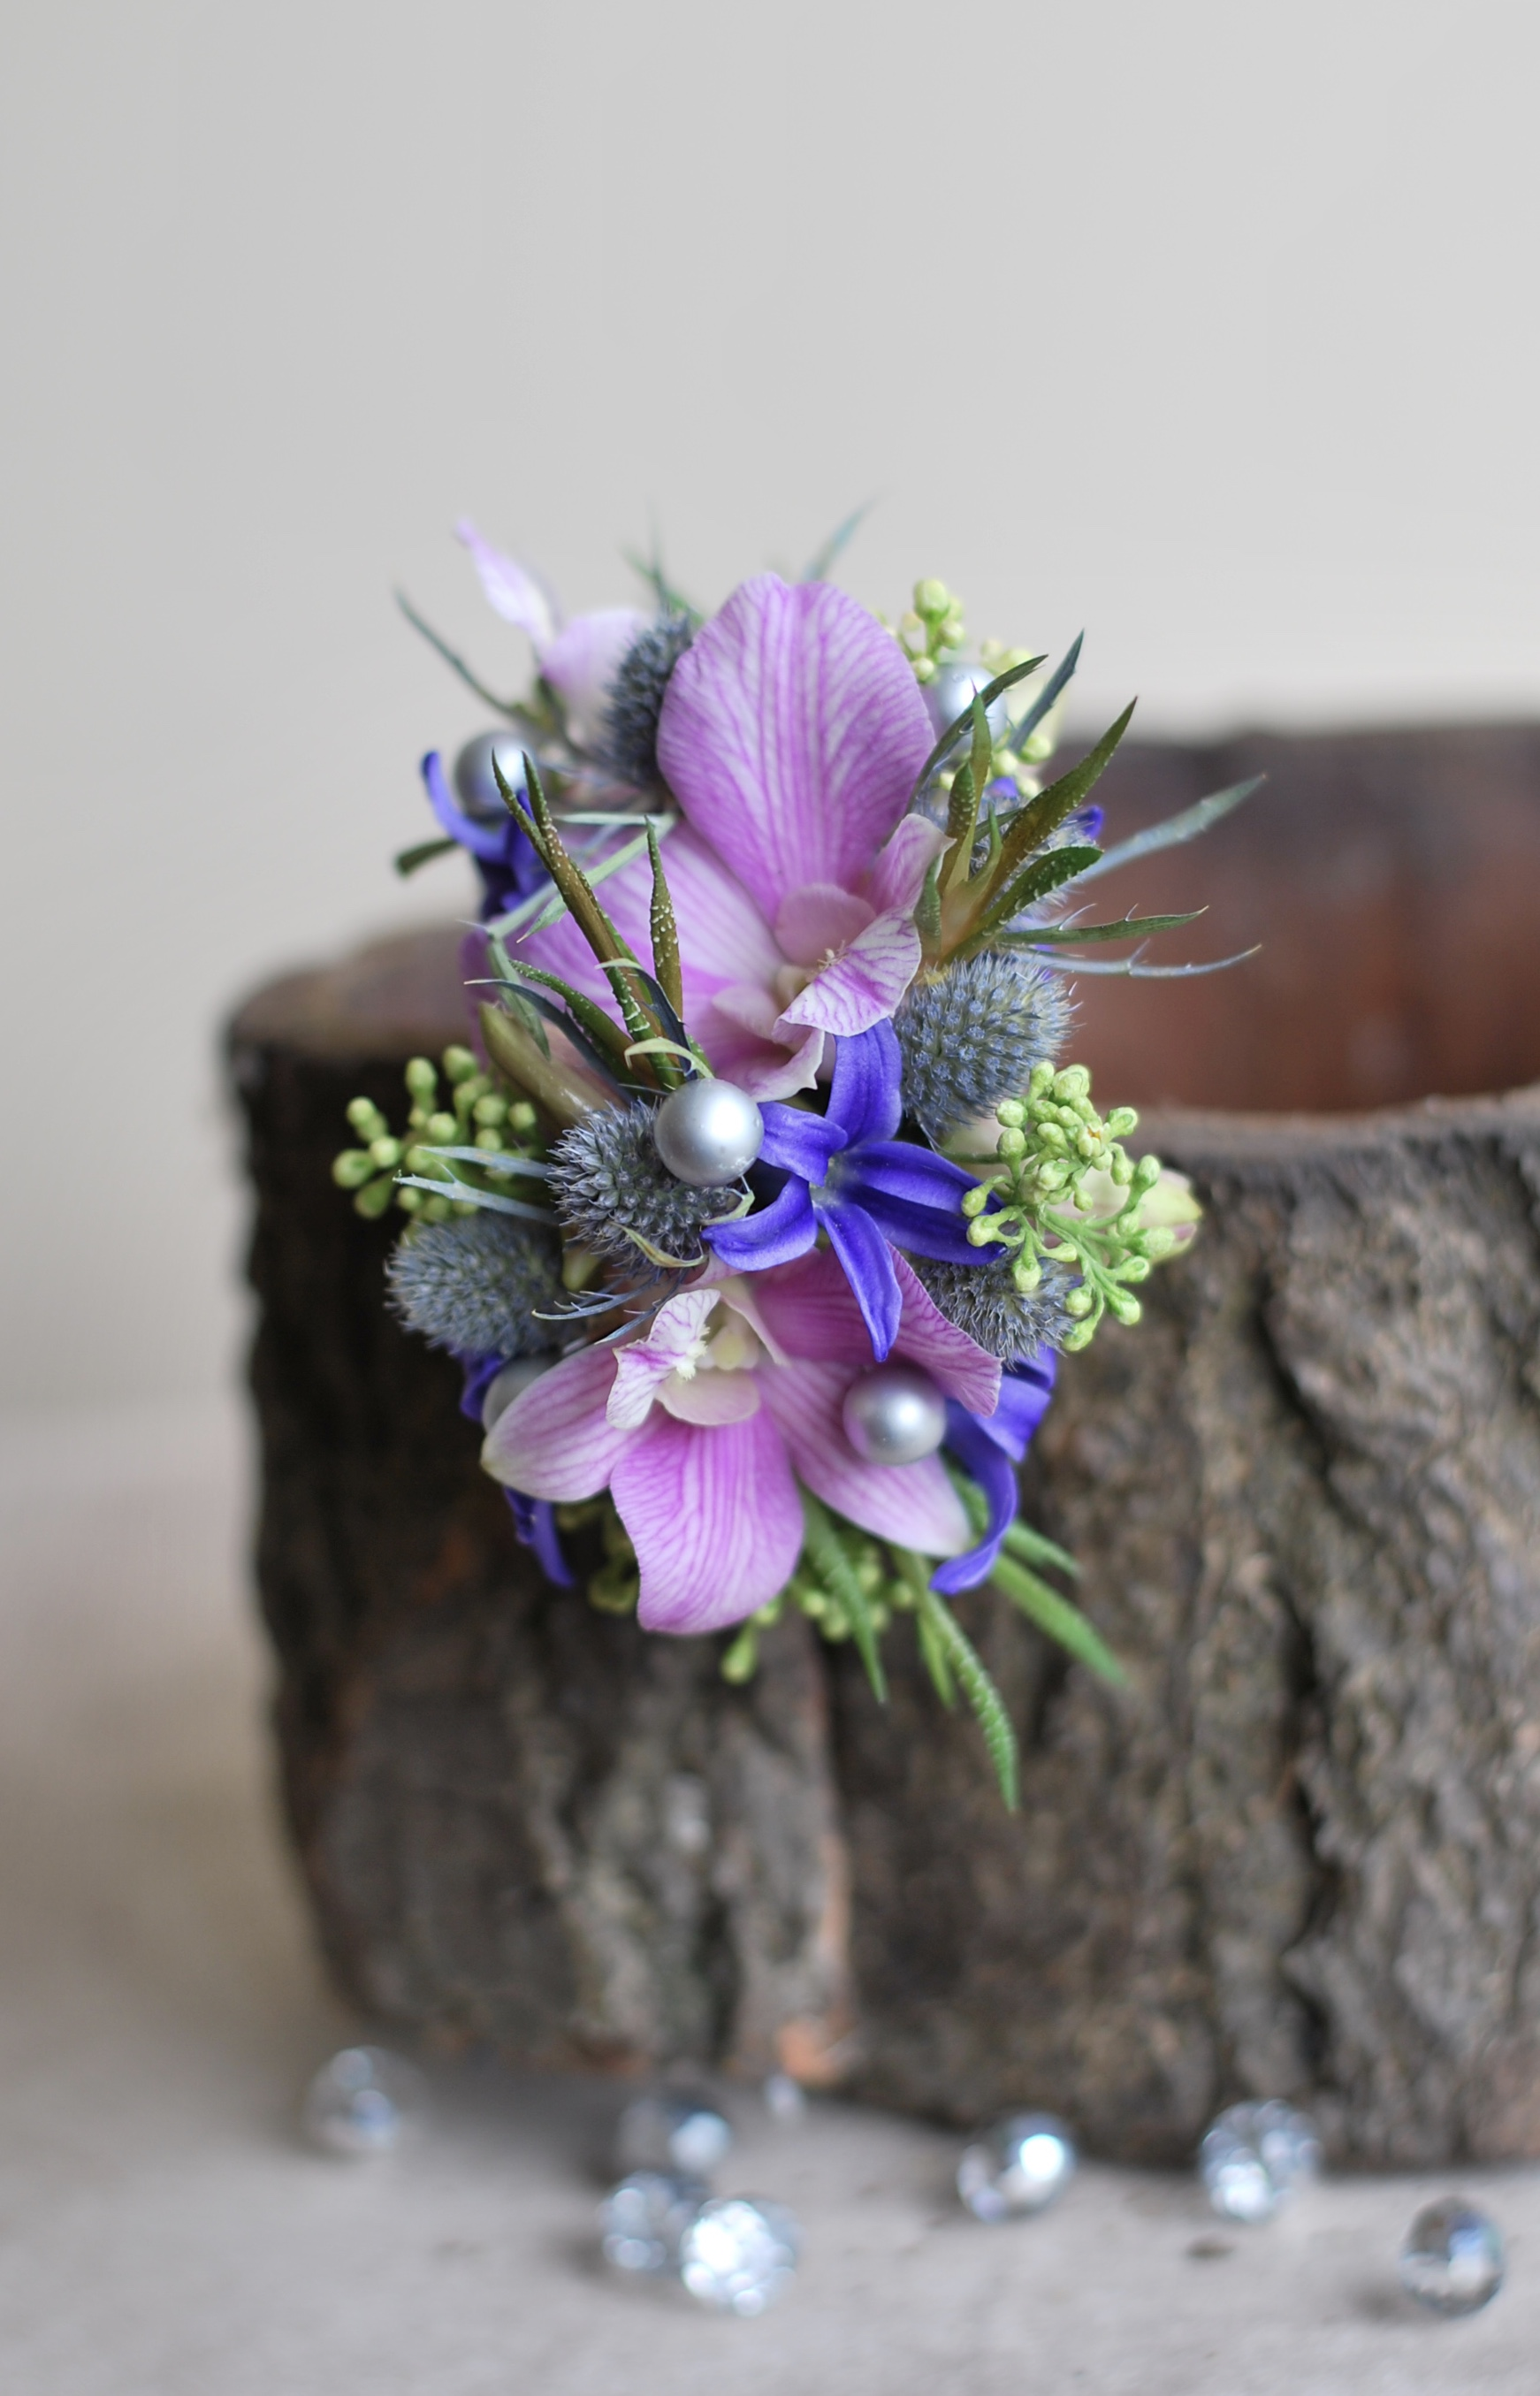 Floral Jewellery/Corsage for weddings, Birthdays,Anniversary and or Mother's day gift and also for Graduation prom by Floral Design by Lili ,  Fraser Valley Florist .